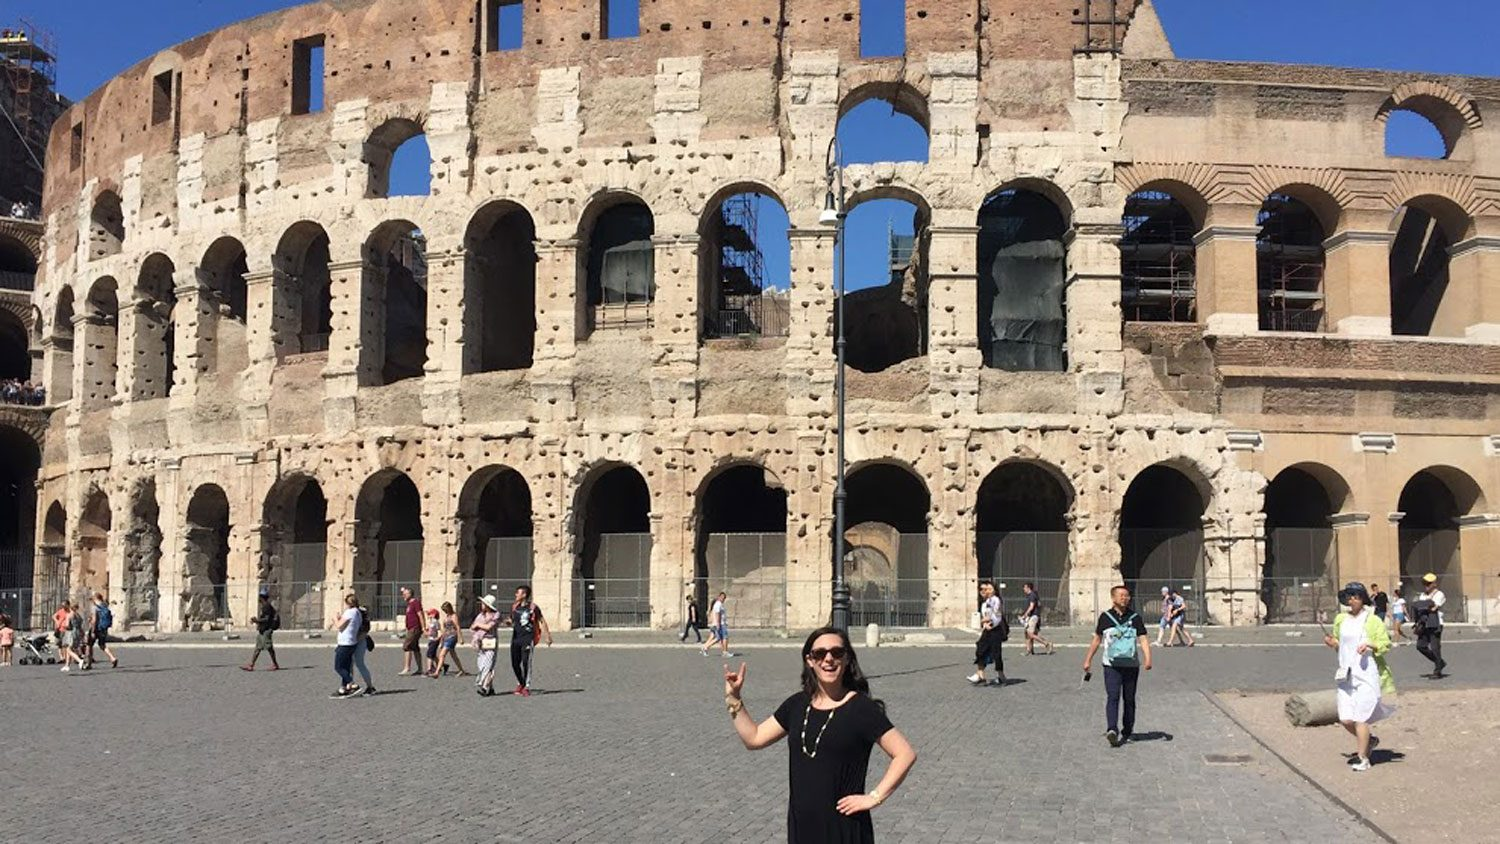 College of Education student Kelsi Harris poses in front of the Colosseum in Rome.